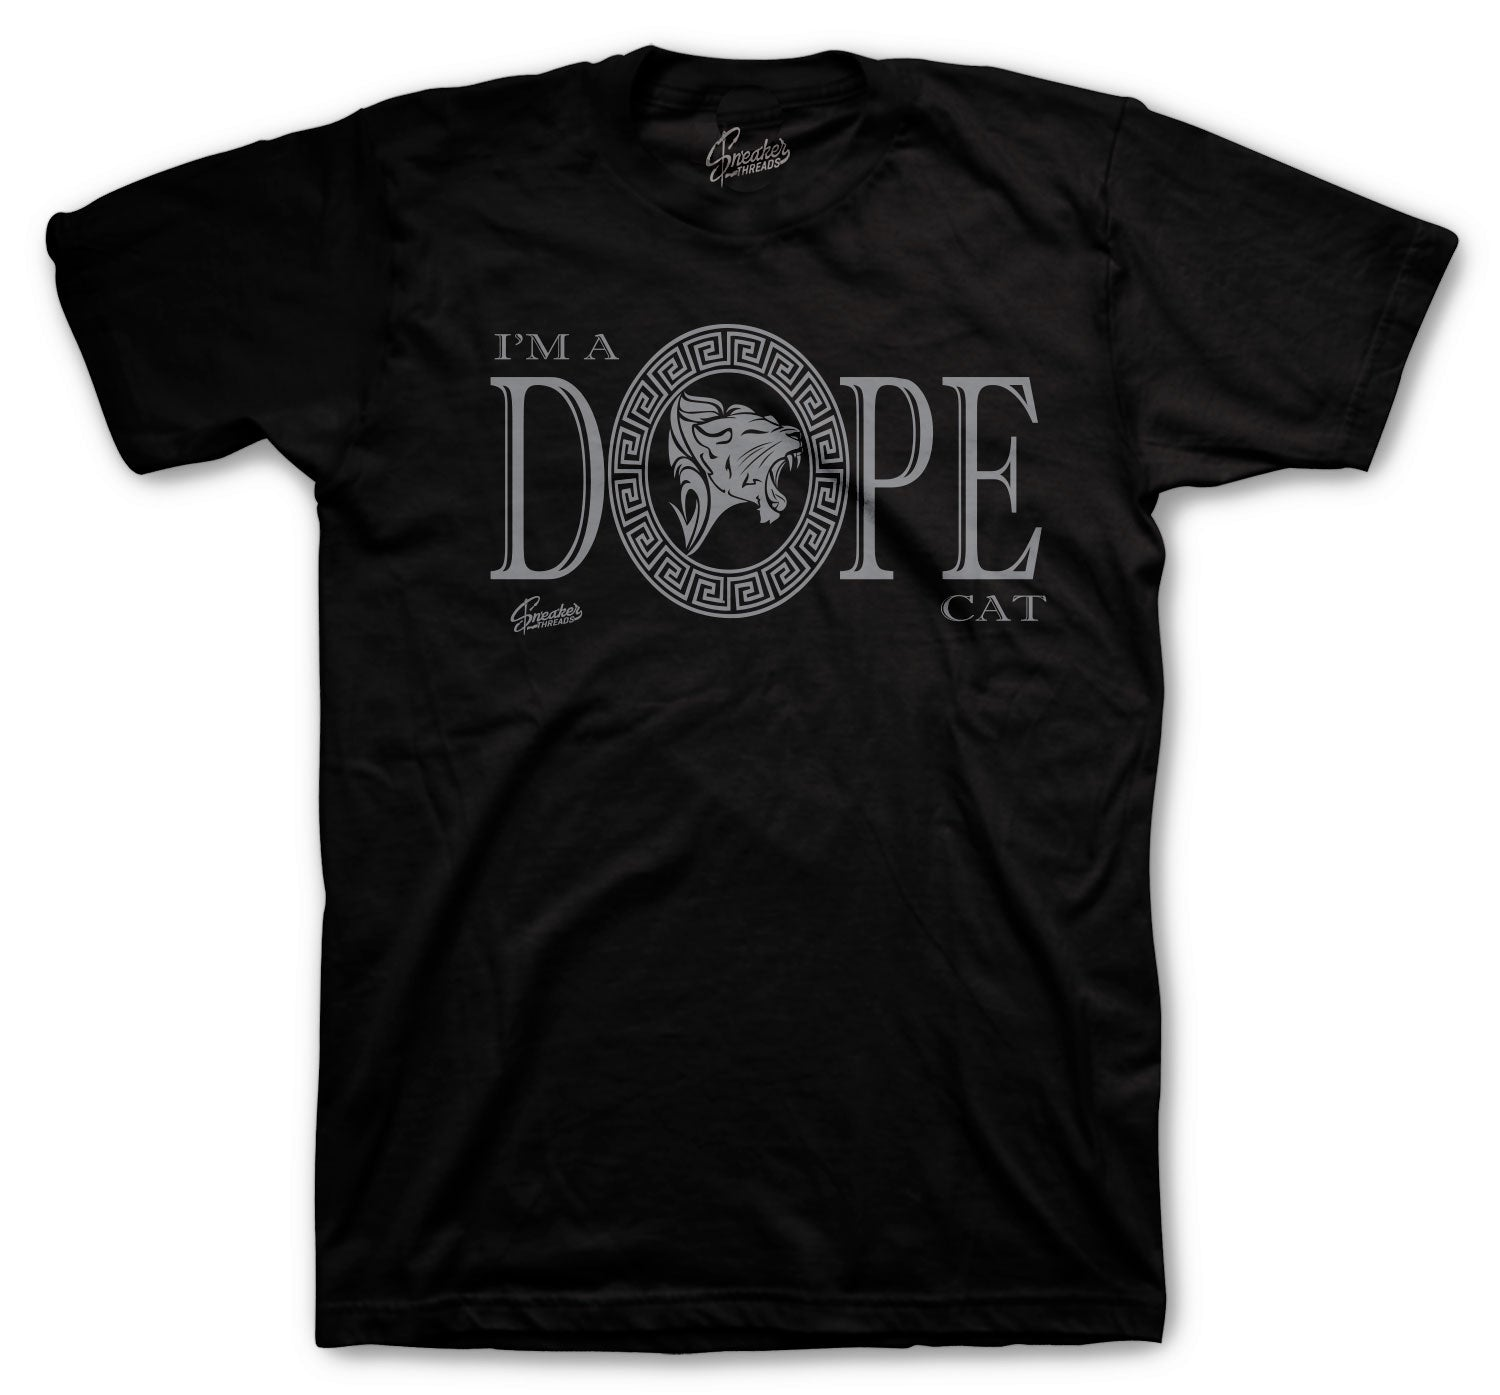 Jordan 4 Black Cat DPE Cat Shirt